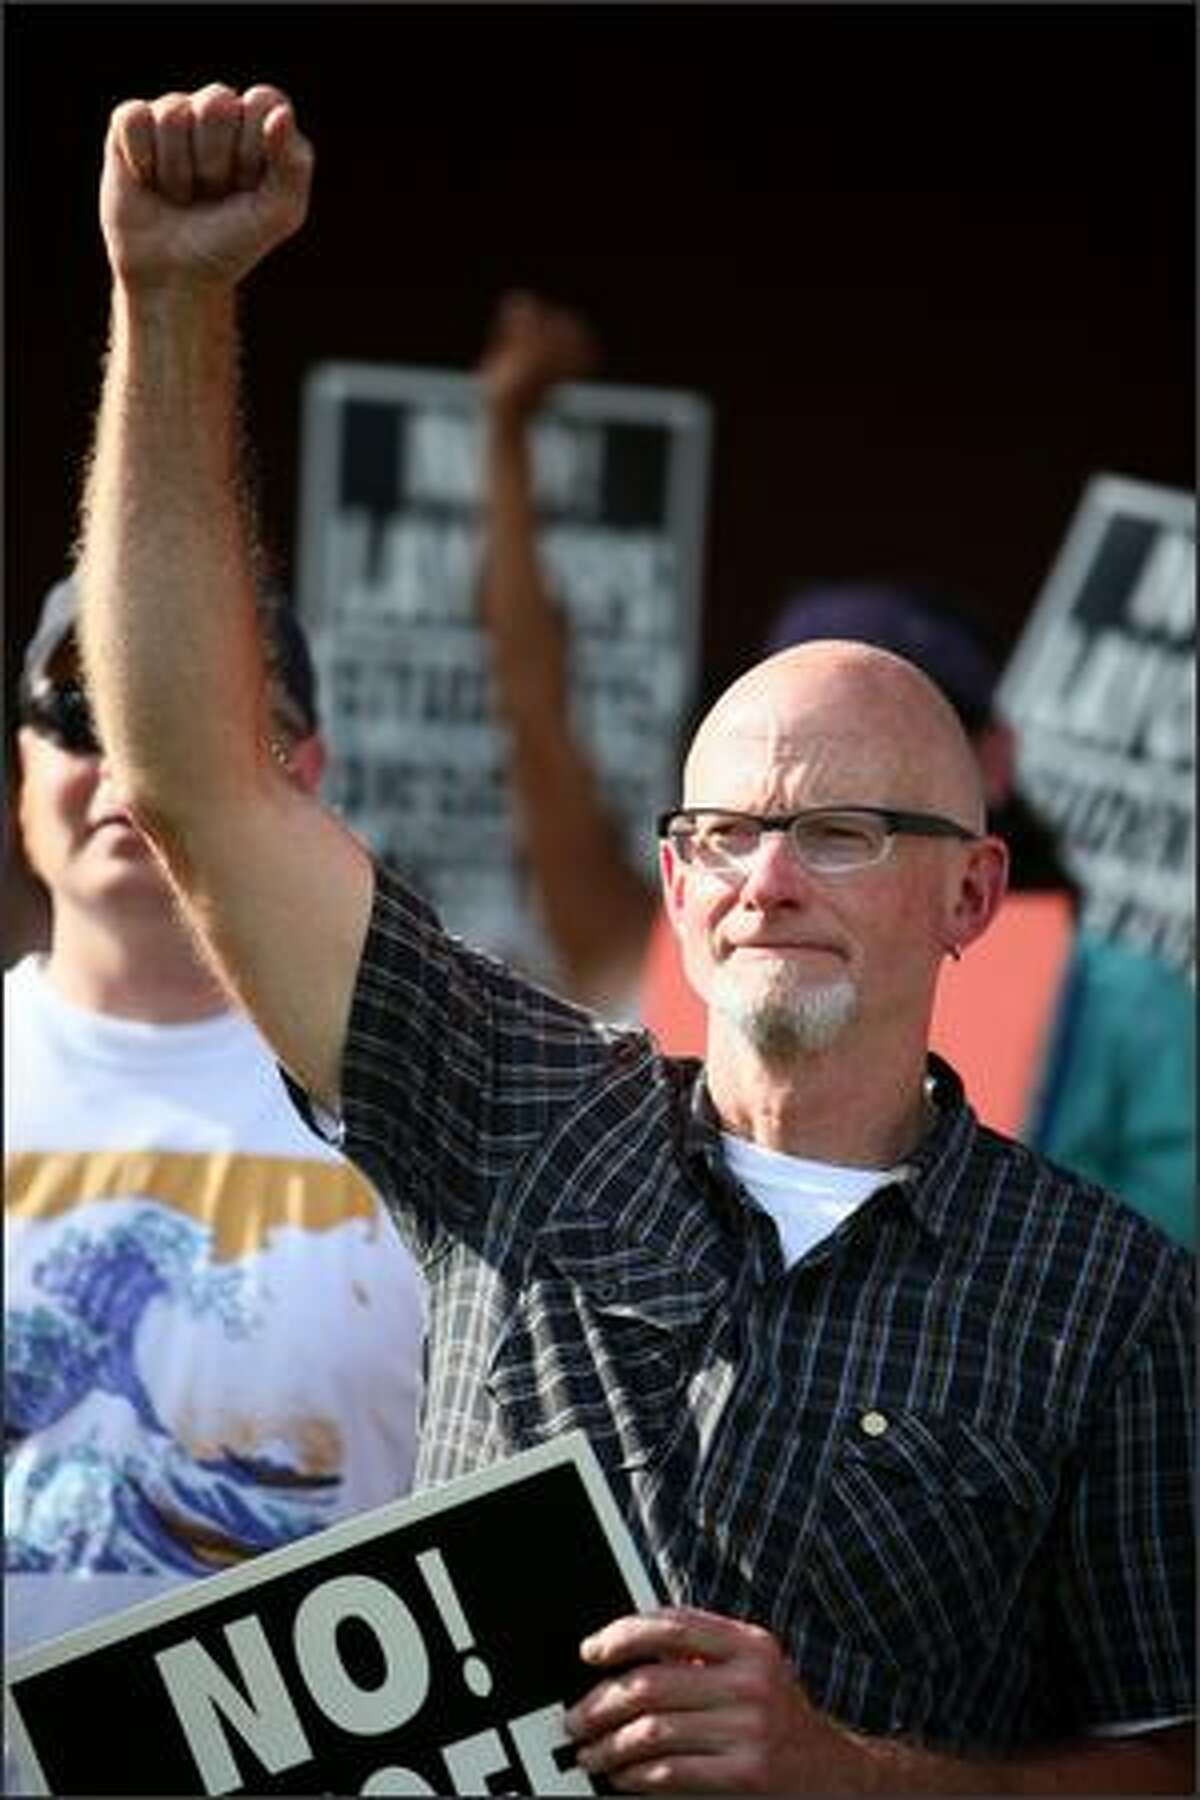 Laid off teacher Jim Jarosz, who worked at Hamilton Middle School, raises his fist with other laid off teachers during a protest in recent reduction in force (RIF) layoffs within Seattle Public Schools at the John Stanford Center for Educational Excellence on June, 3, 2009 in Seattle.